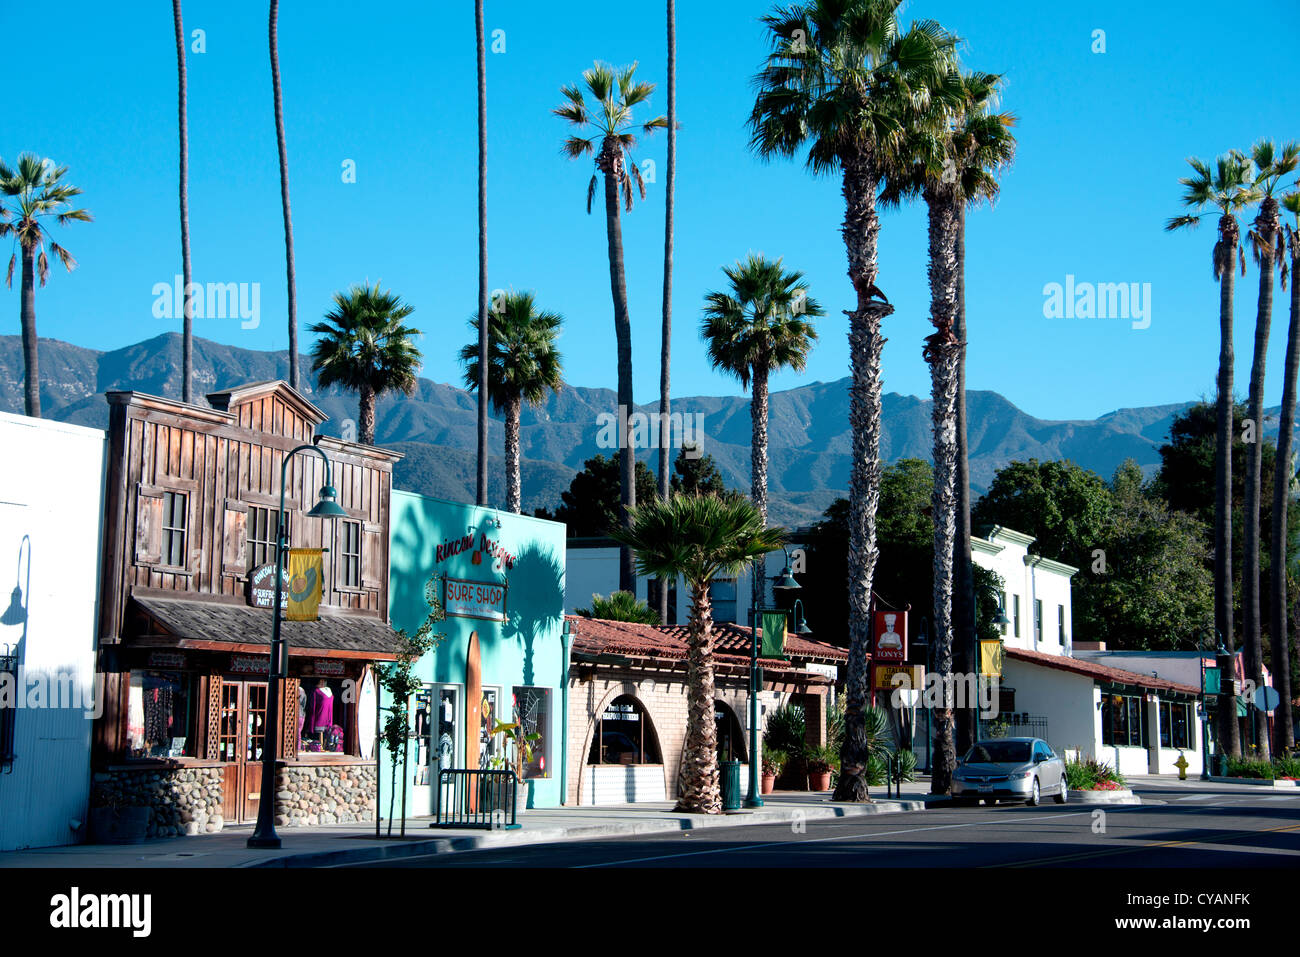 Free Car Wallpaper Download Mobile Main Street Of Small American Town Of Carpinteria On The